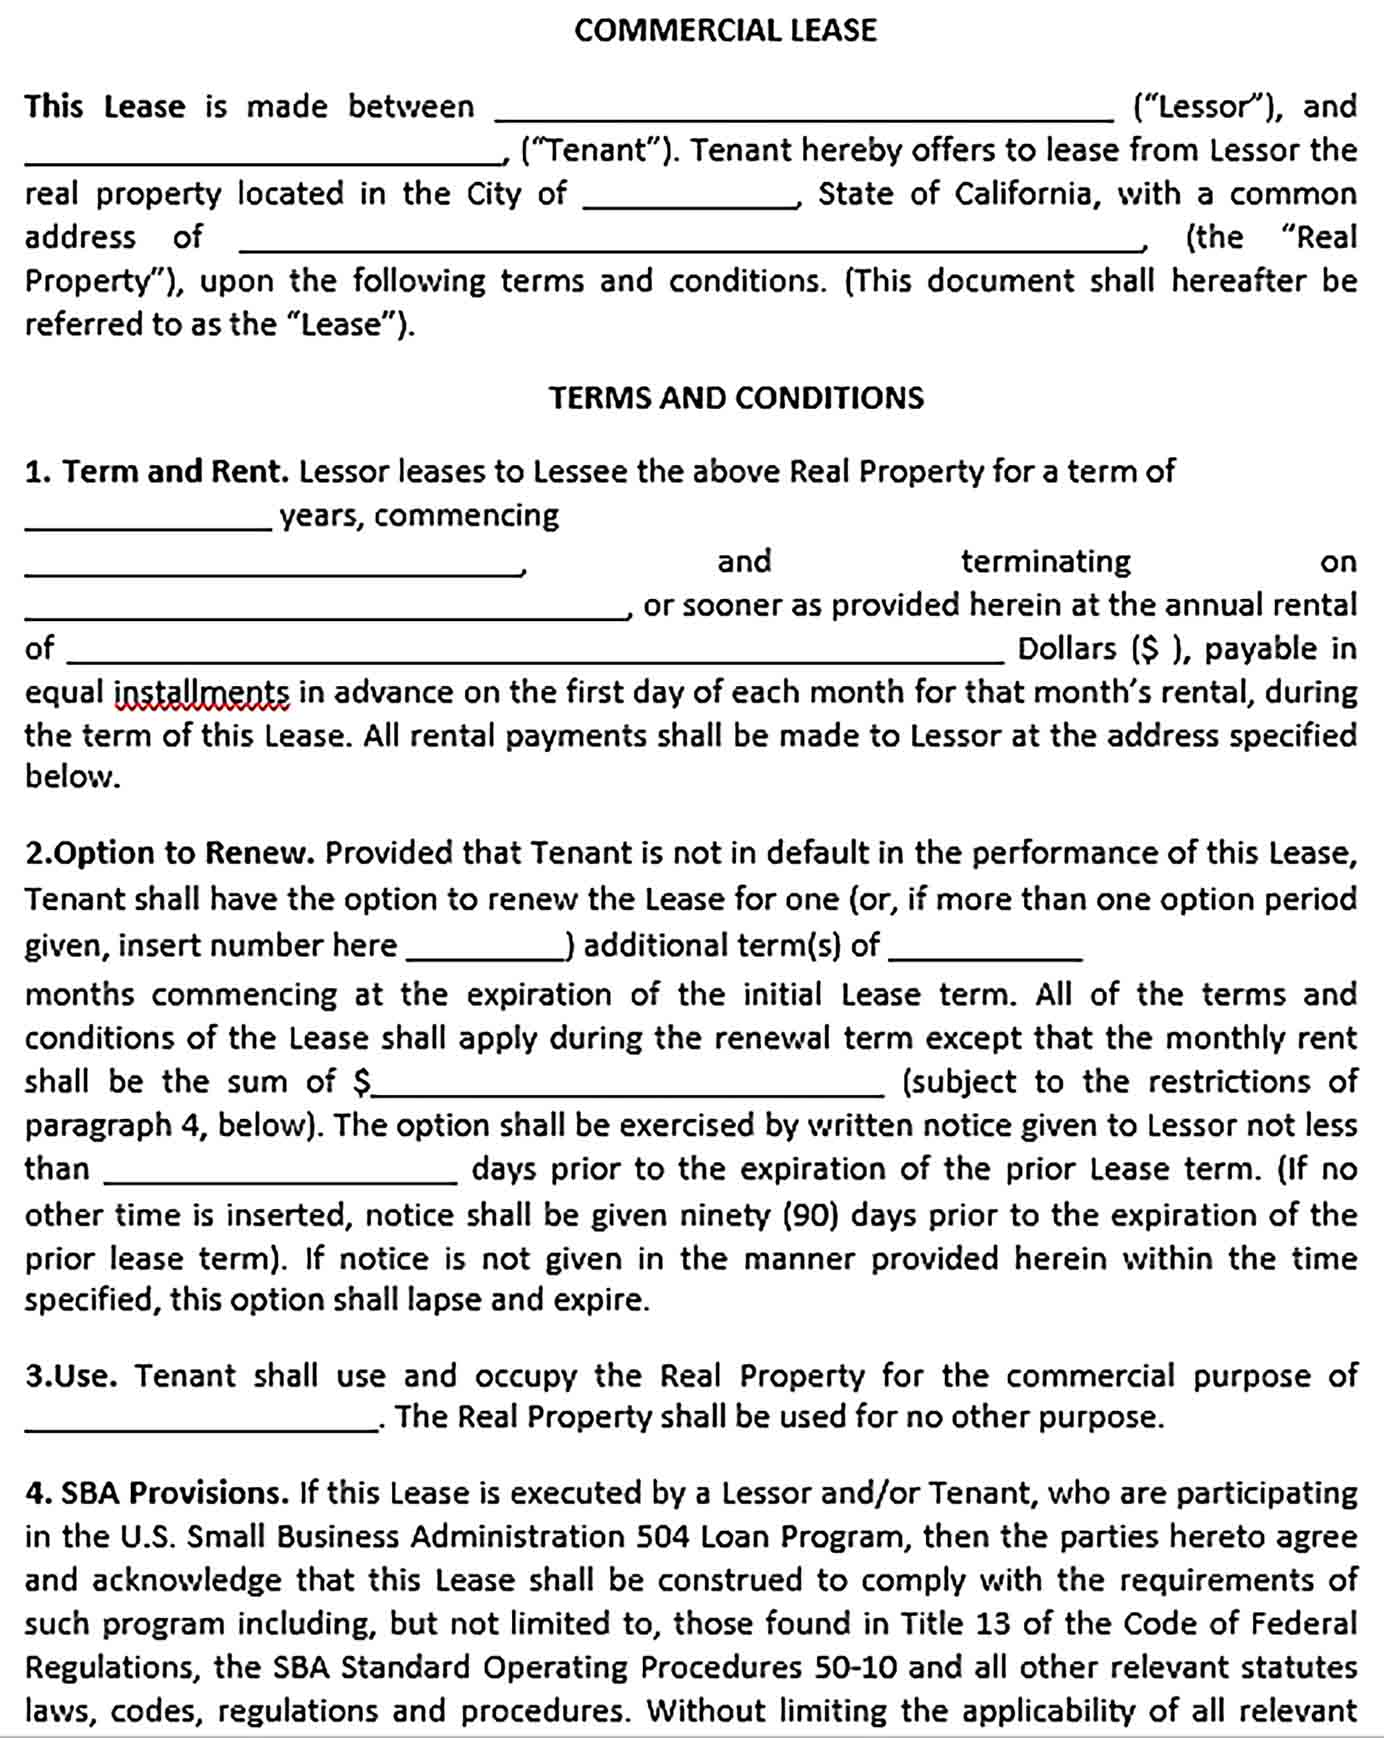 Sample Commercial Real Estate Lease Agreement